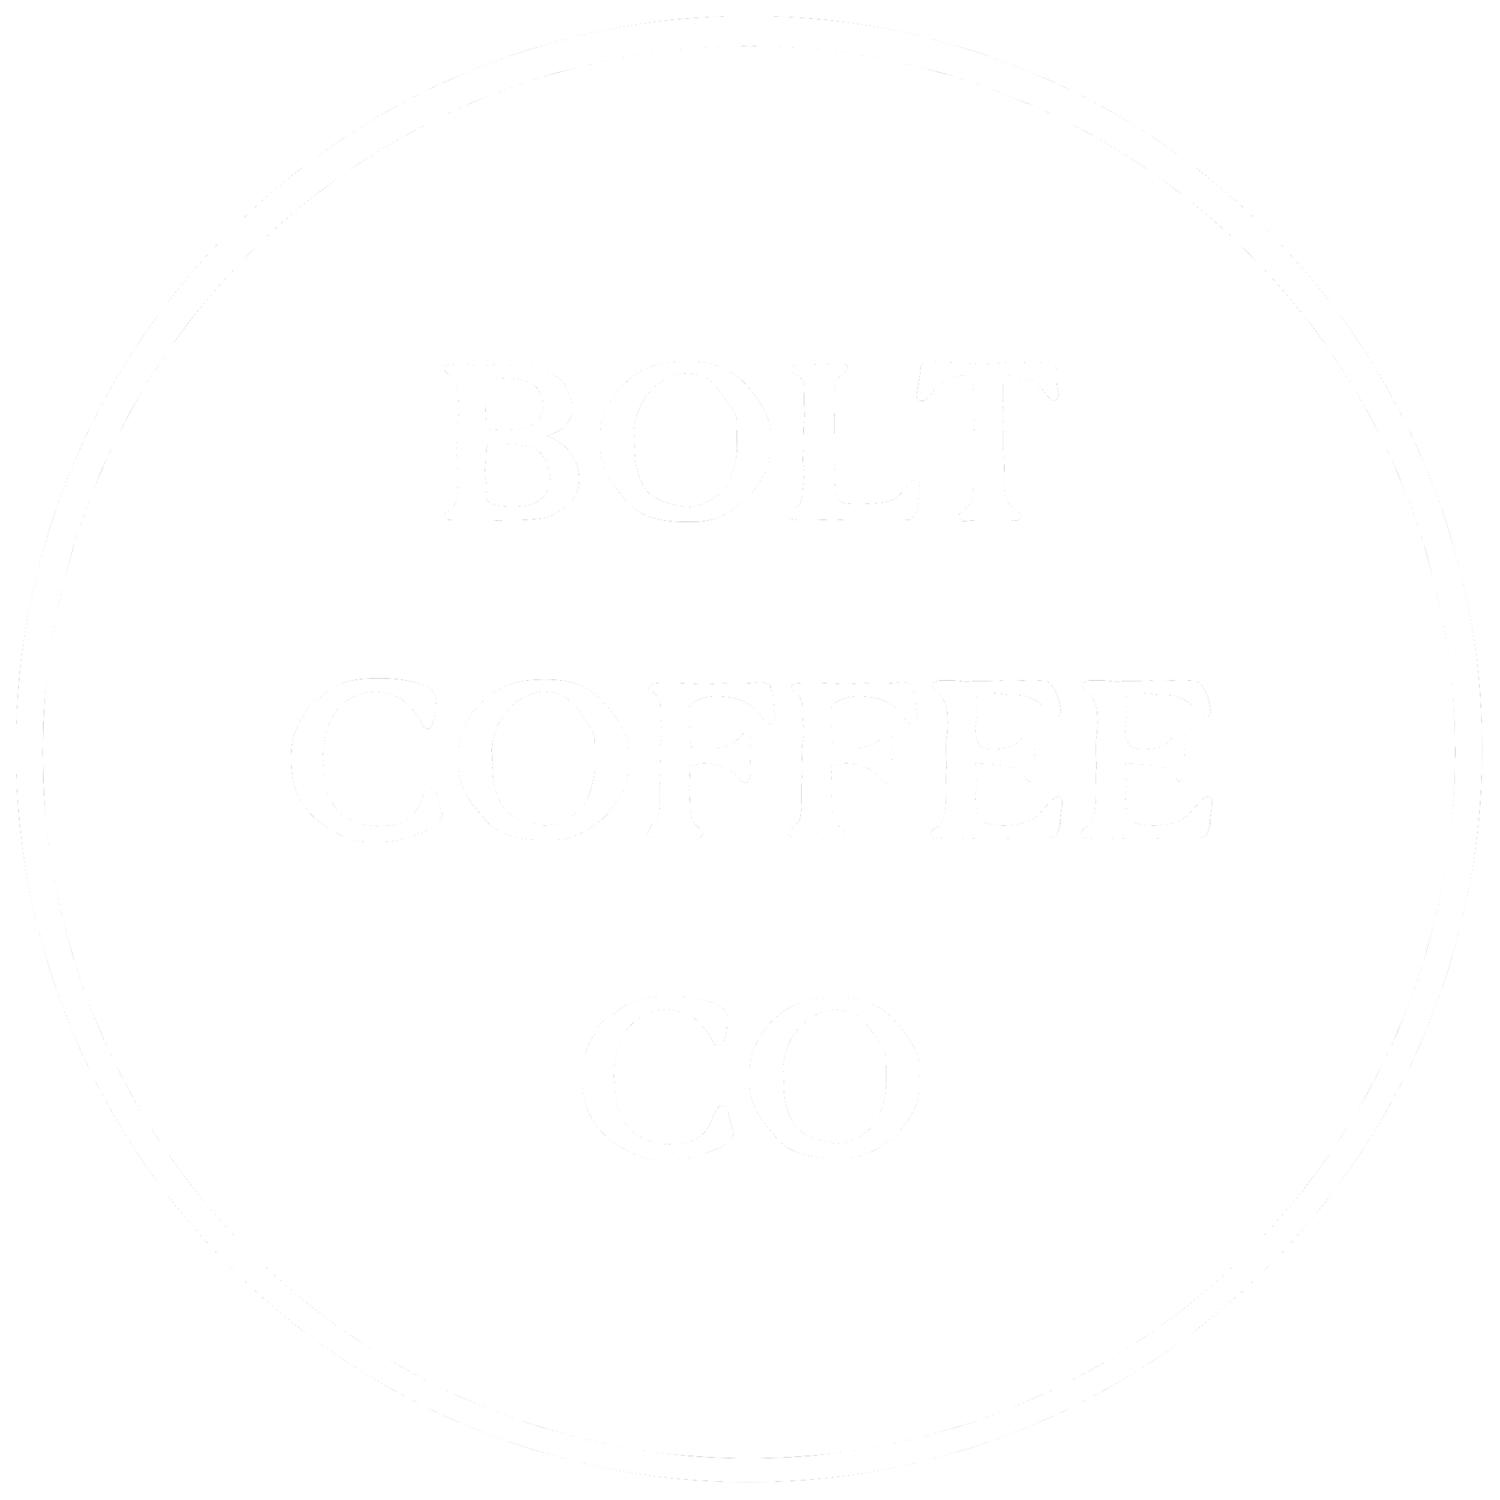 Bolt Coffee Co.